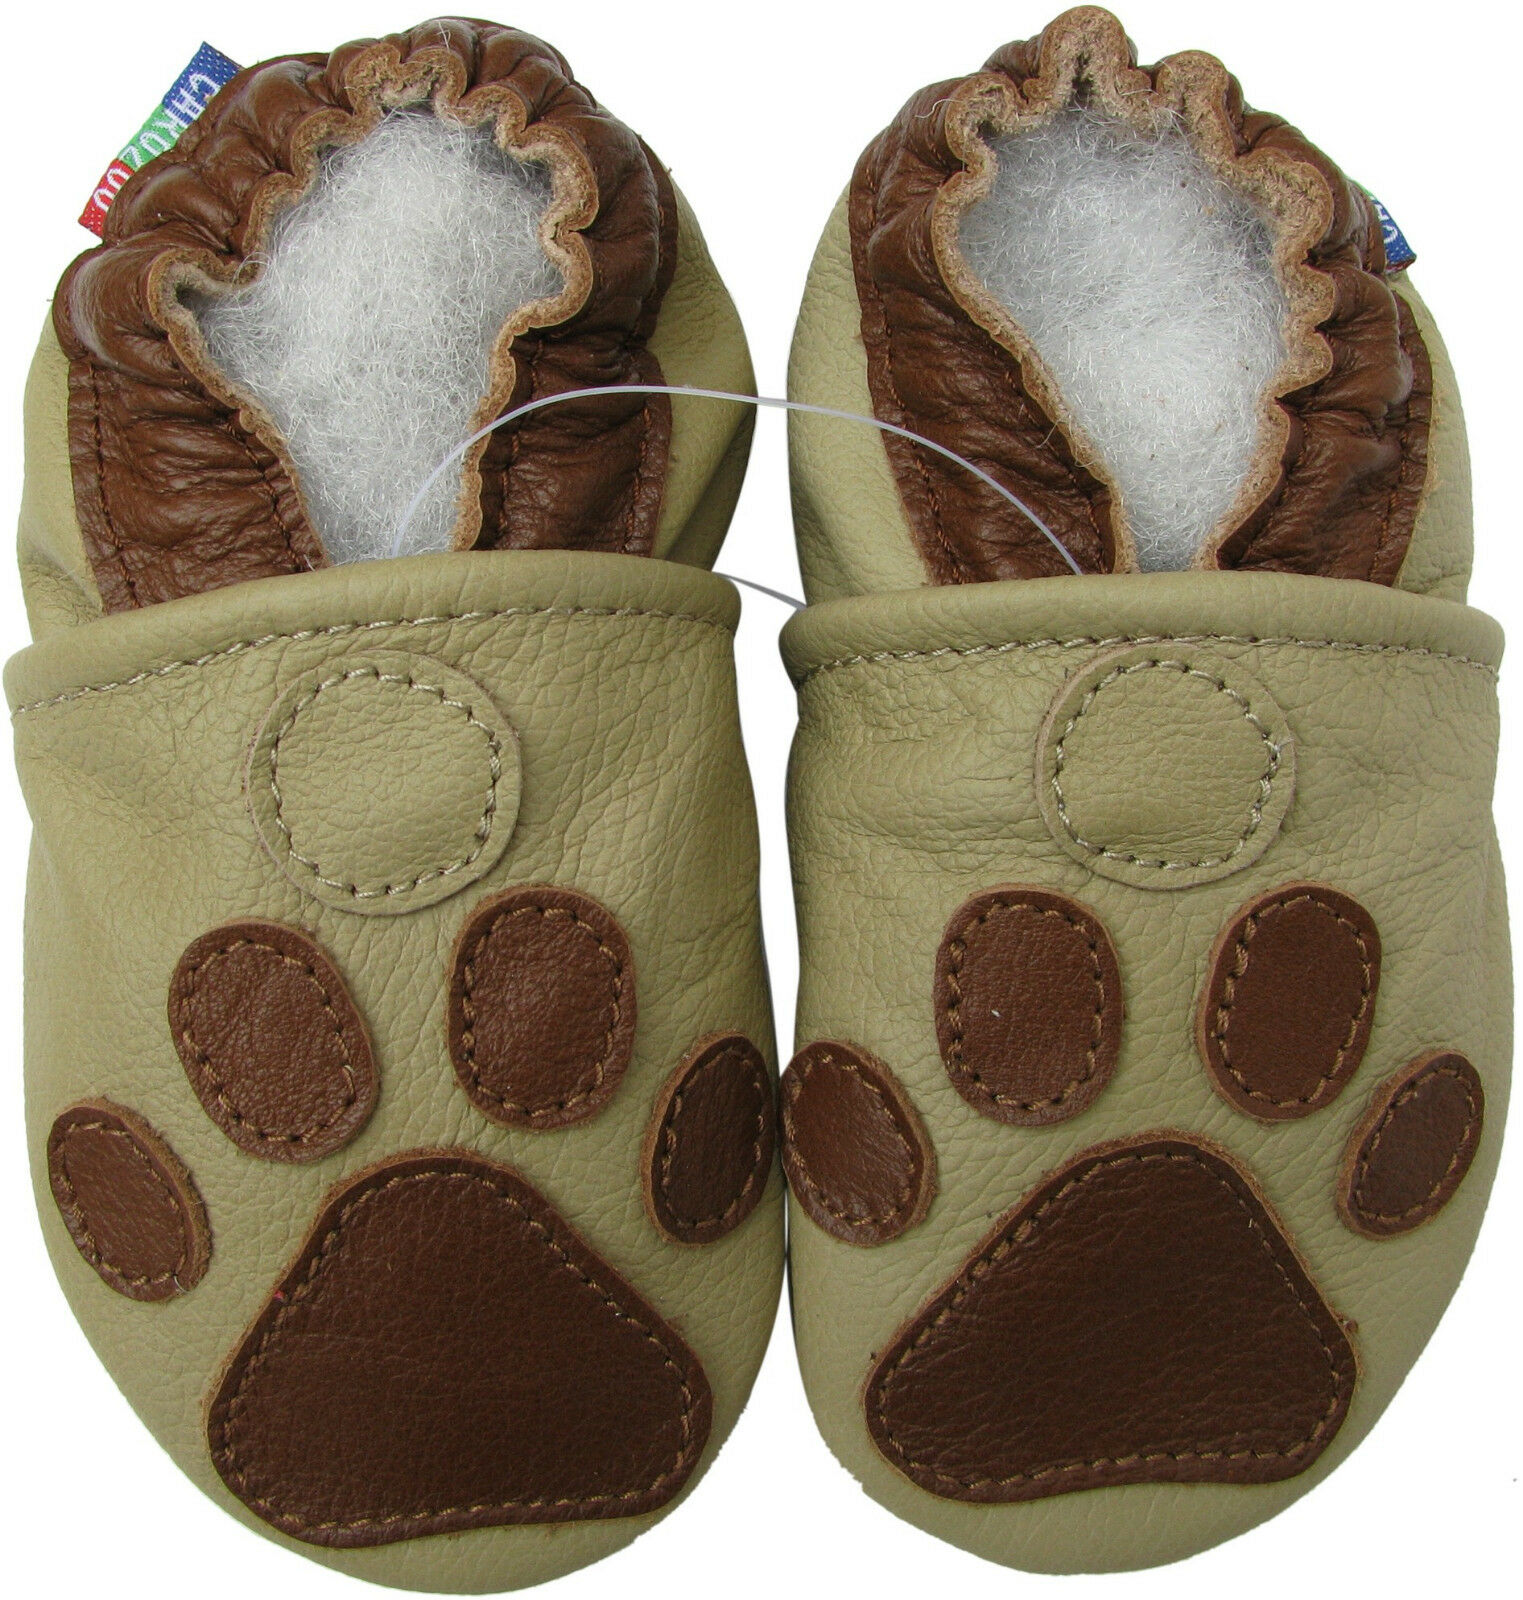 carozoo soft sole leather baby shoes paw grey 2 3y • $12 99 Pic